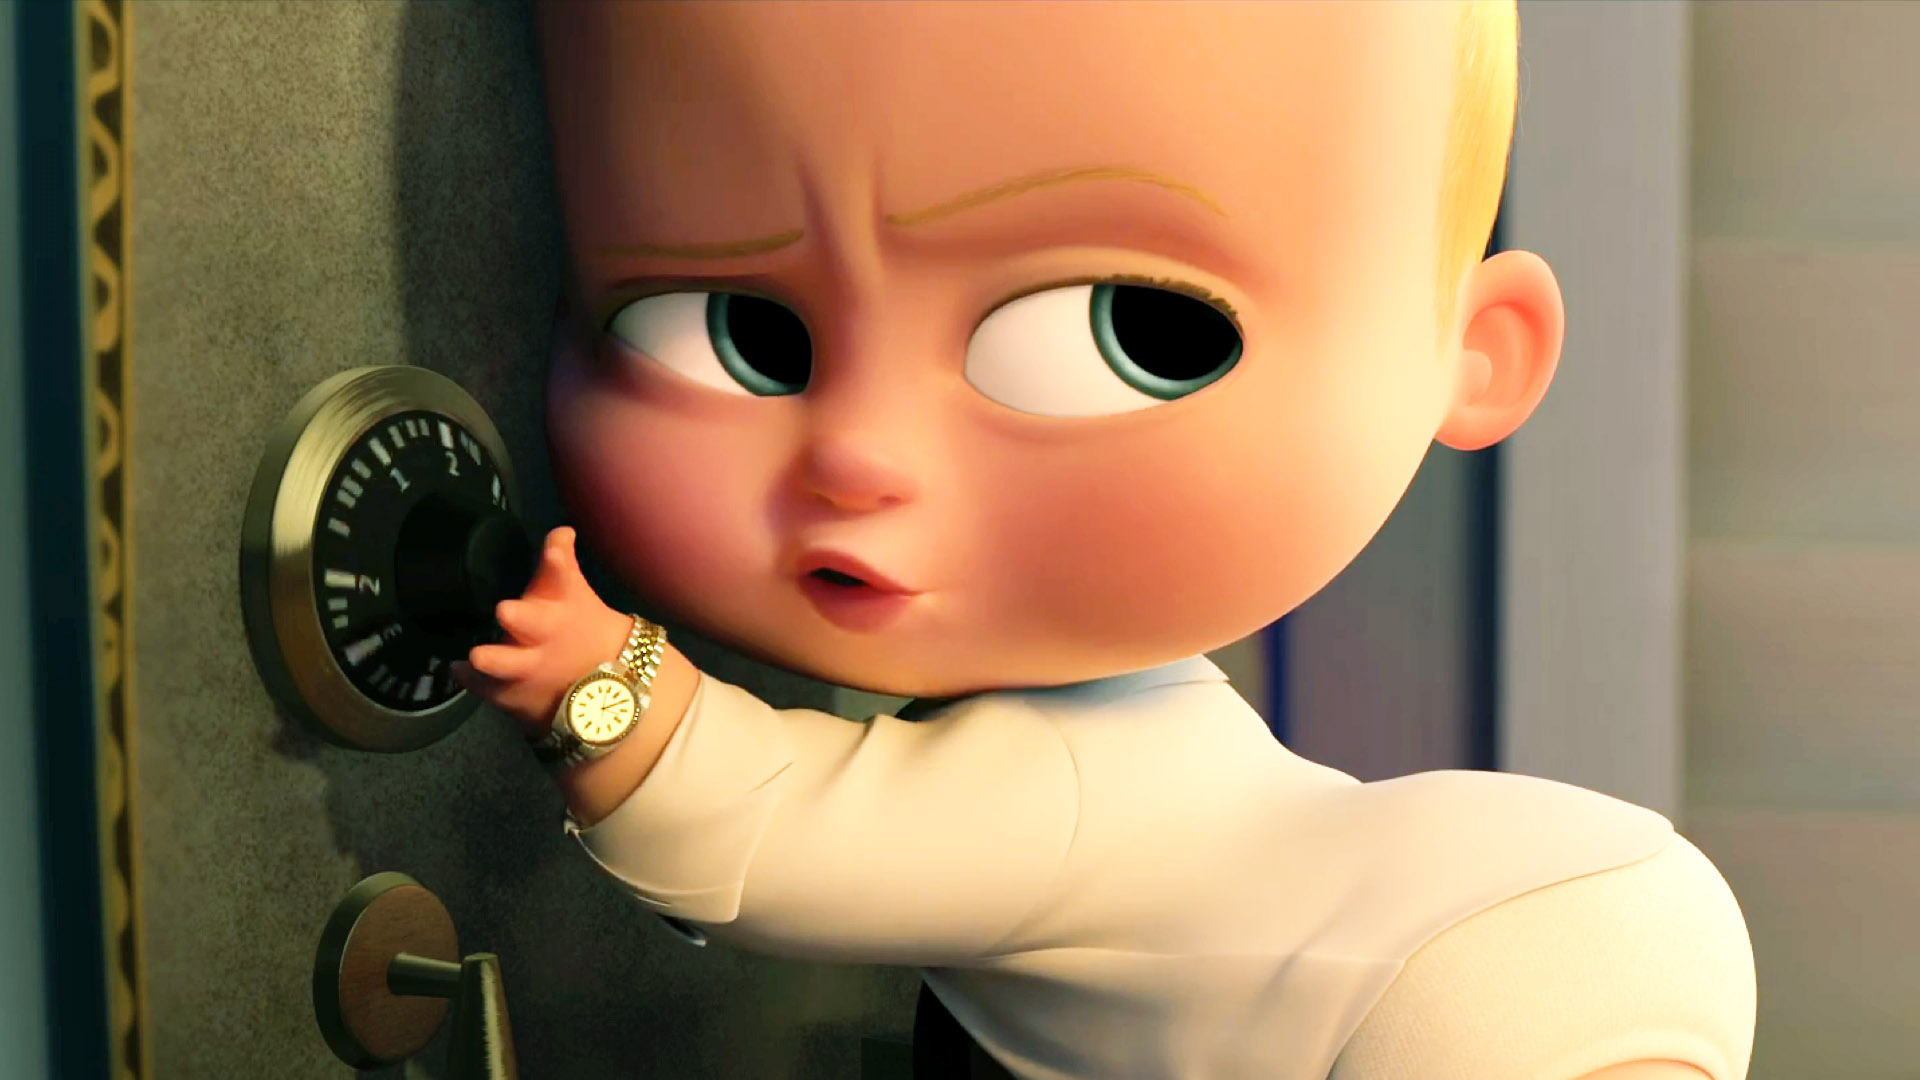 3a293609c694f Boss Baby 2 arriving in March 2021 - The Dark Carnival